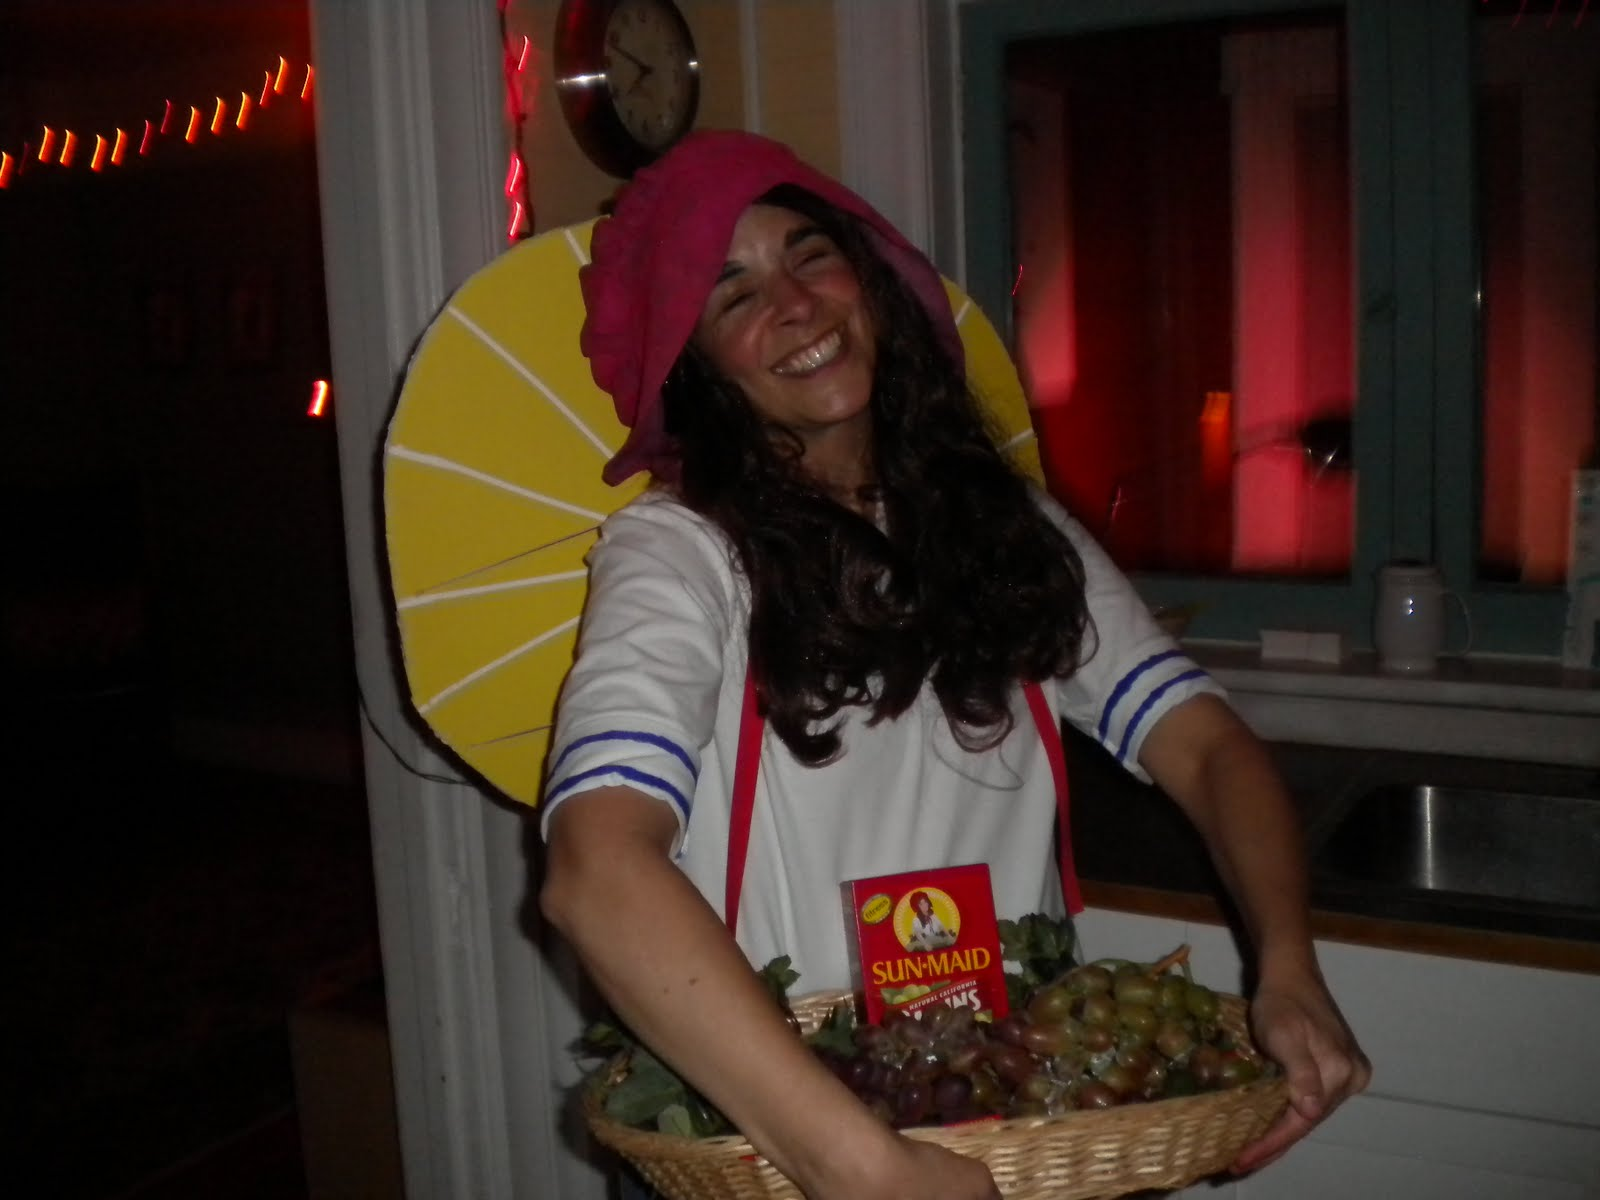 This is Wuh Haecker as the Sunmaid Raisin girl.